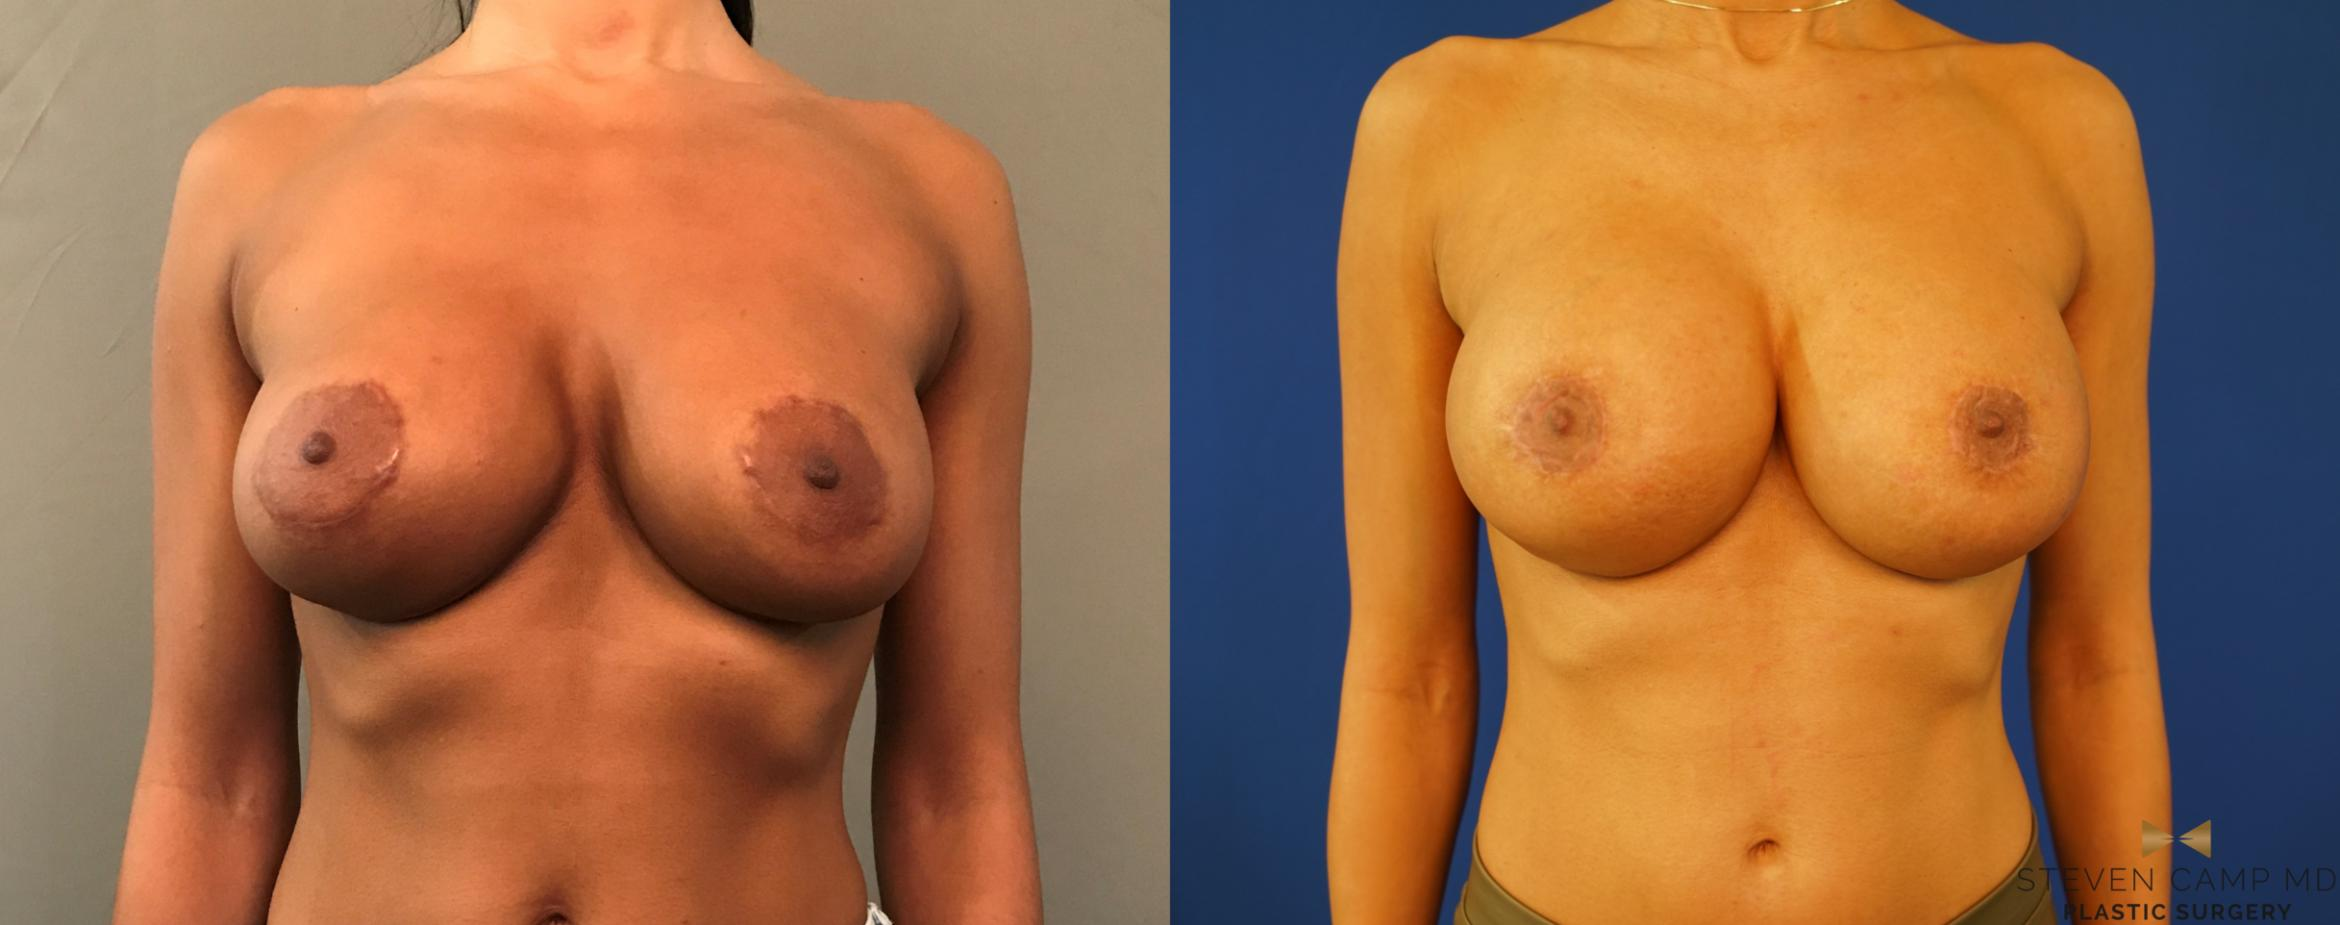 Breast Augmentation Revision Before & After Photo | Fort Worth, Texas | Steven Camp MD Plastic Surgery